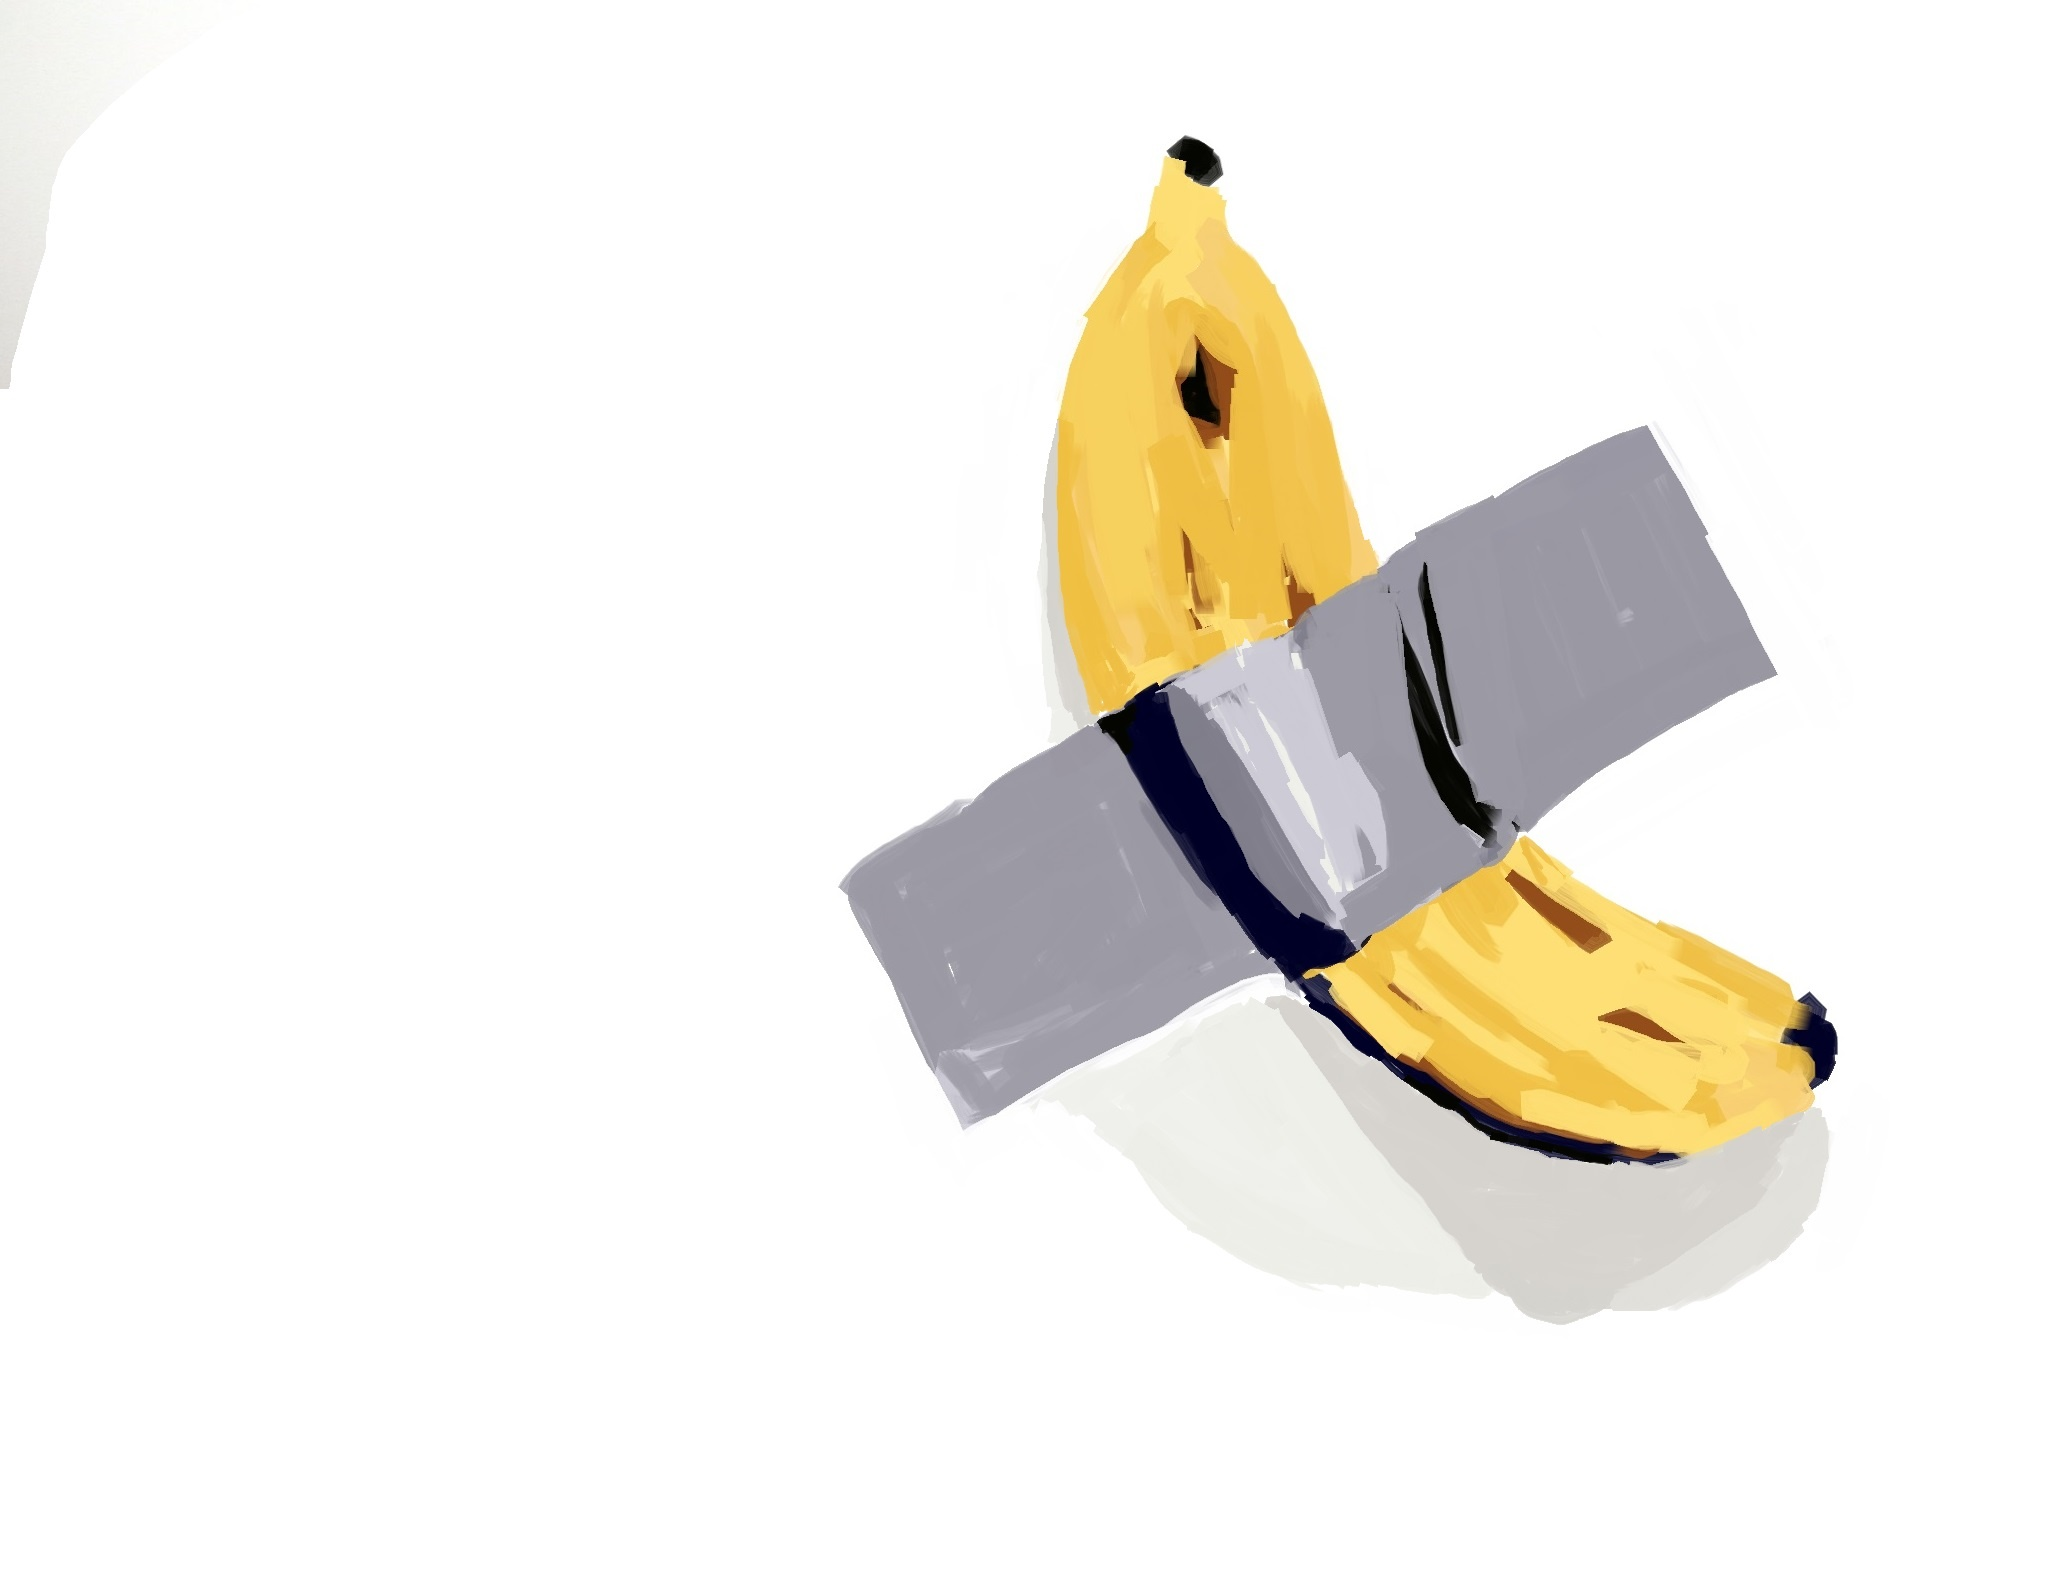 bananna duct tape on